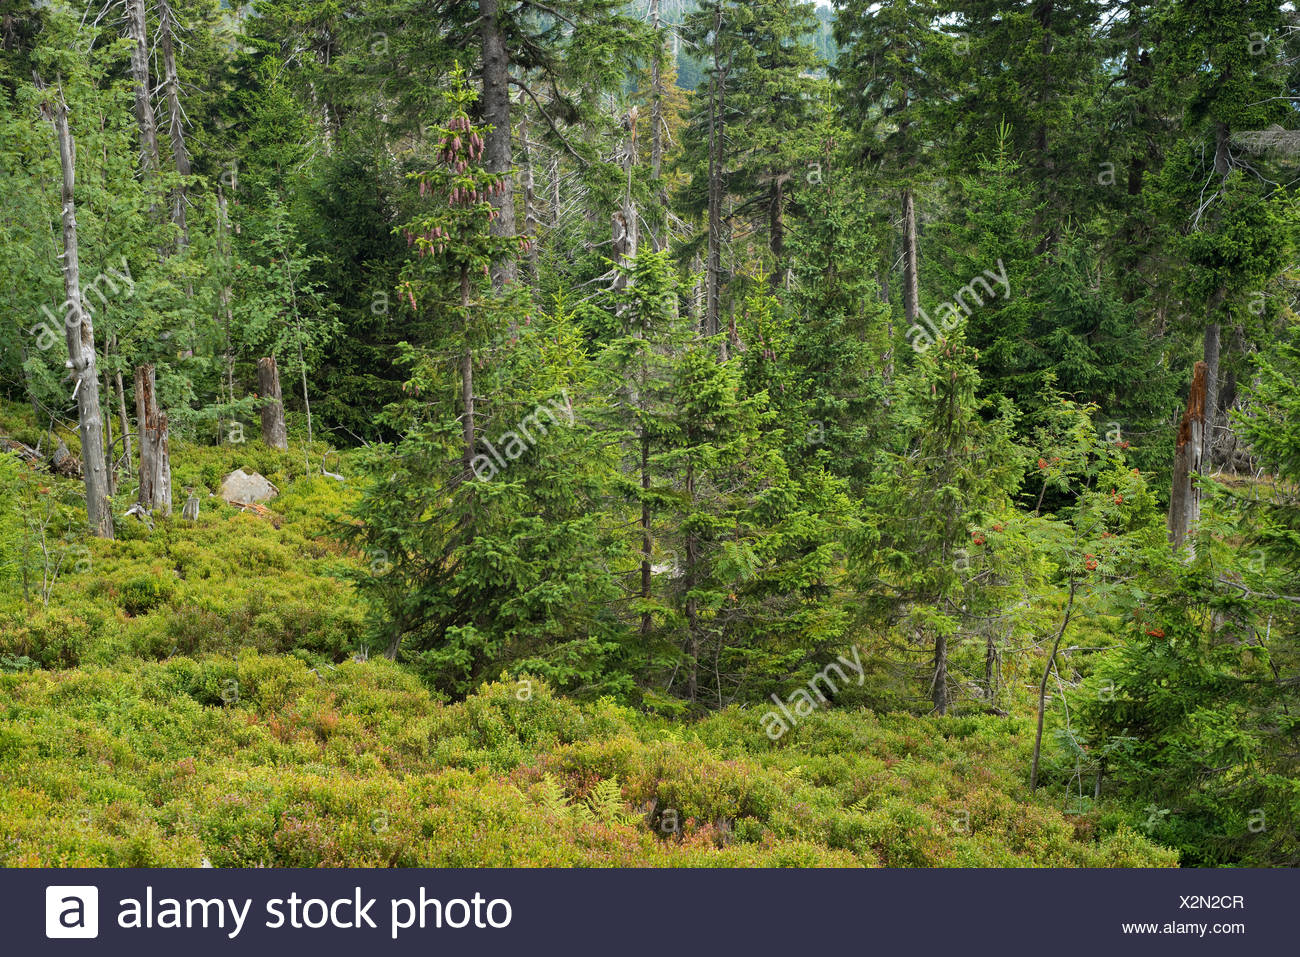 Spruce jungle, Norway Spruce trees (Picea abies), on Mt Brocken, Harz National Park, Saxony-Anhalt, Germany - Stock Image